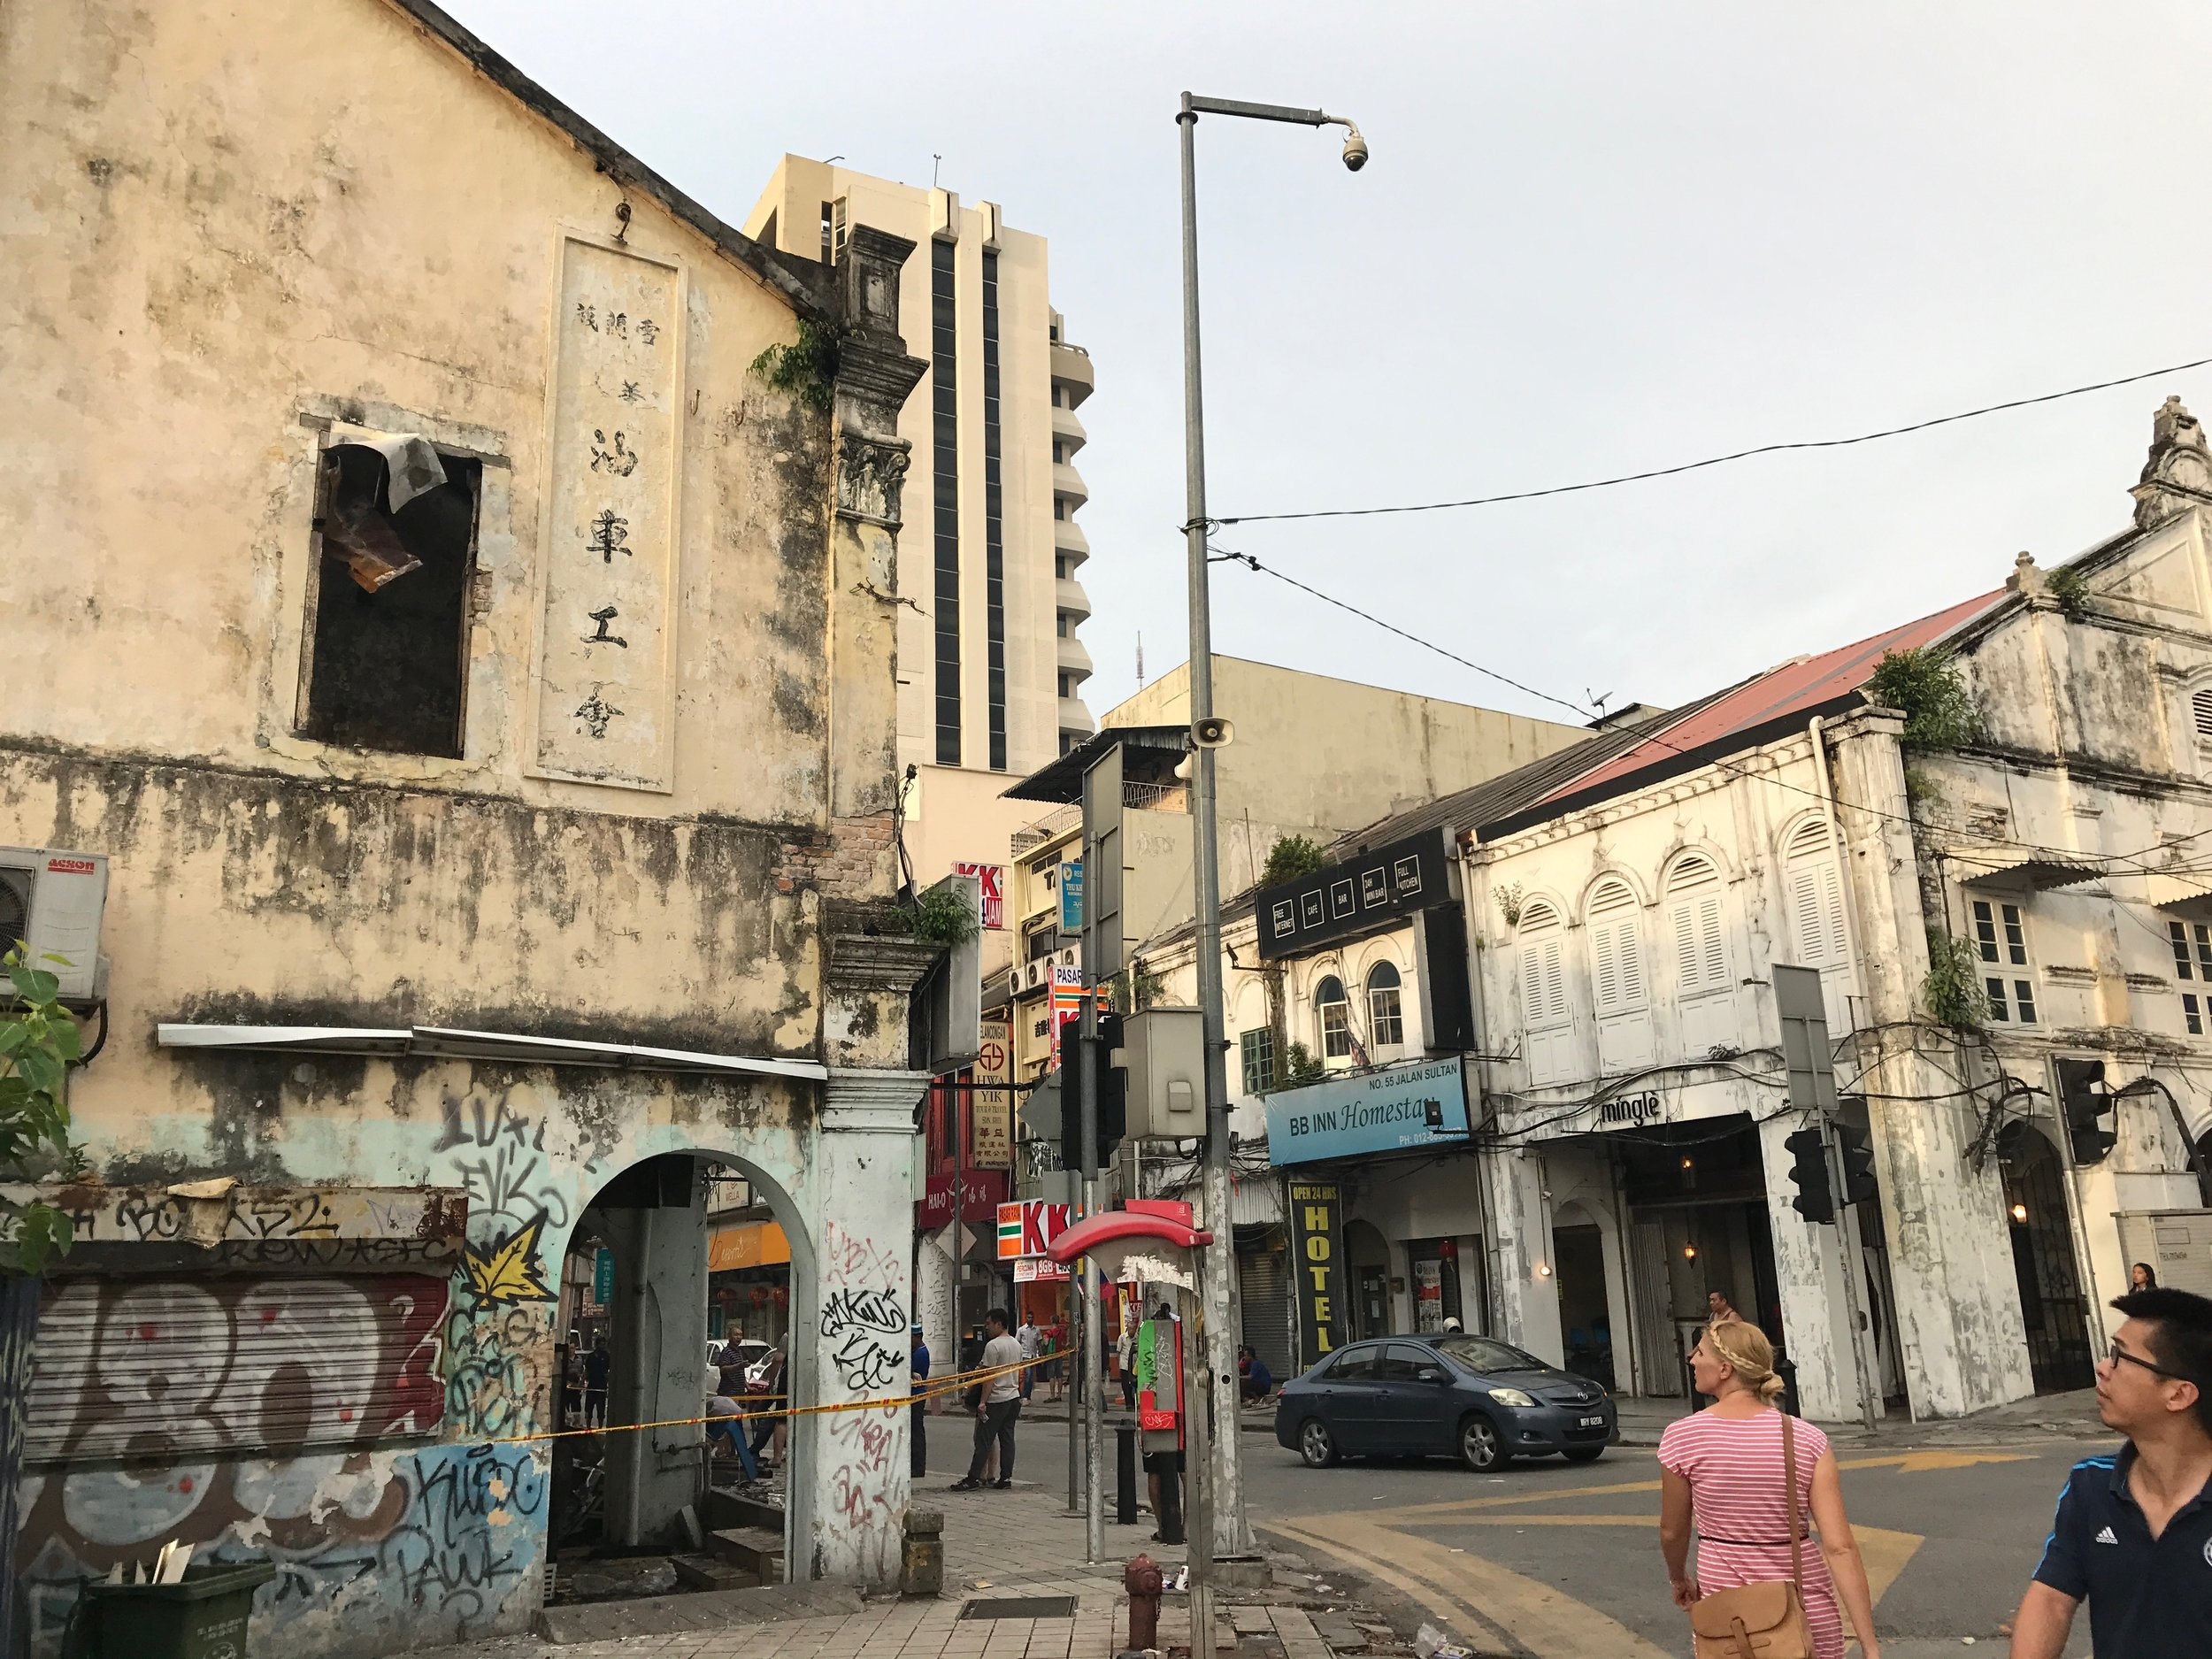 The building on the left had it's insides completely destroyed by the fire. The corner building directly across the street is our hostel.